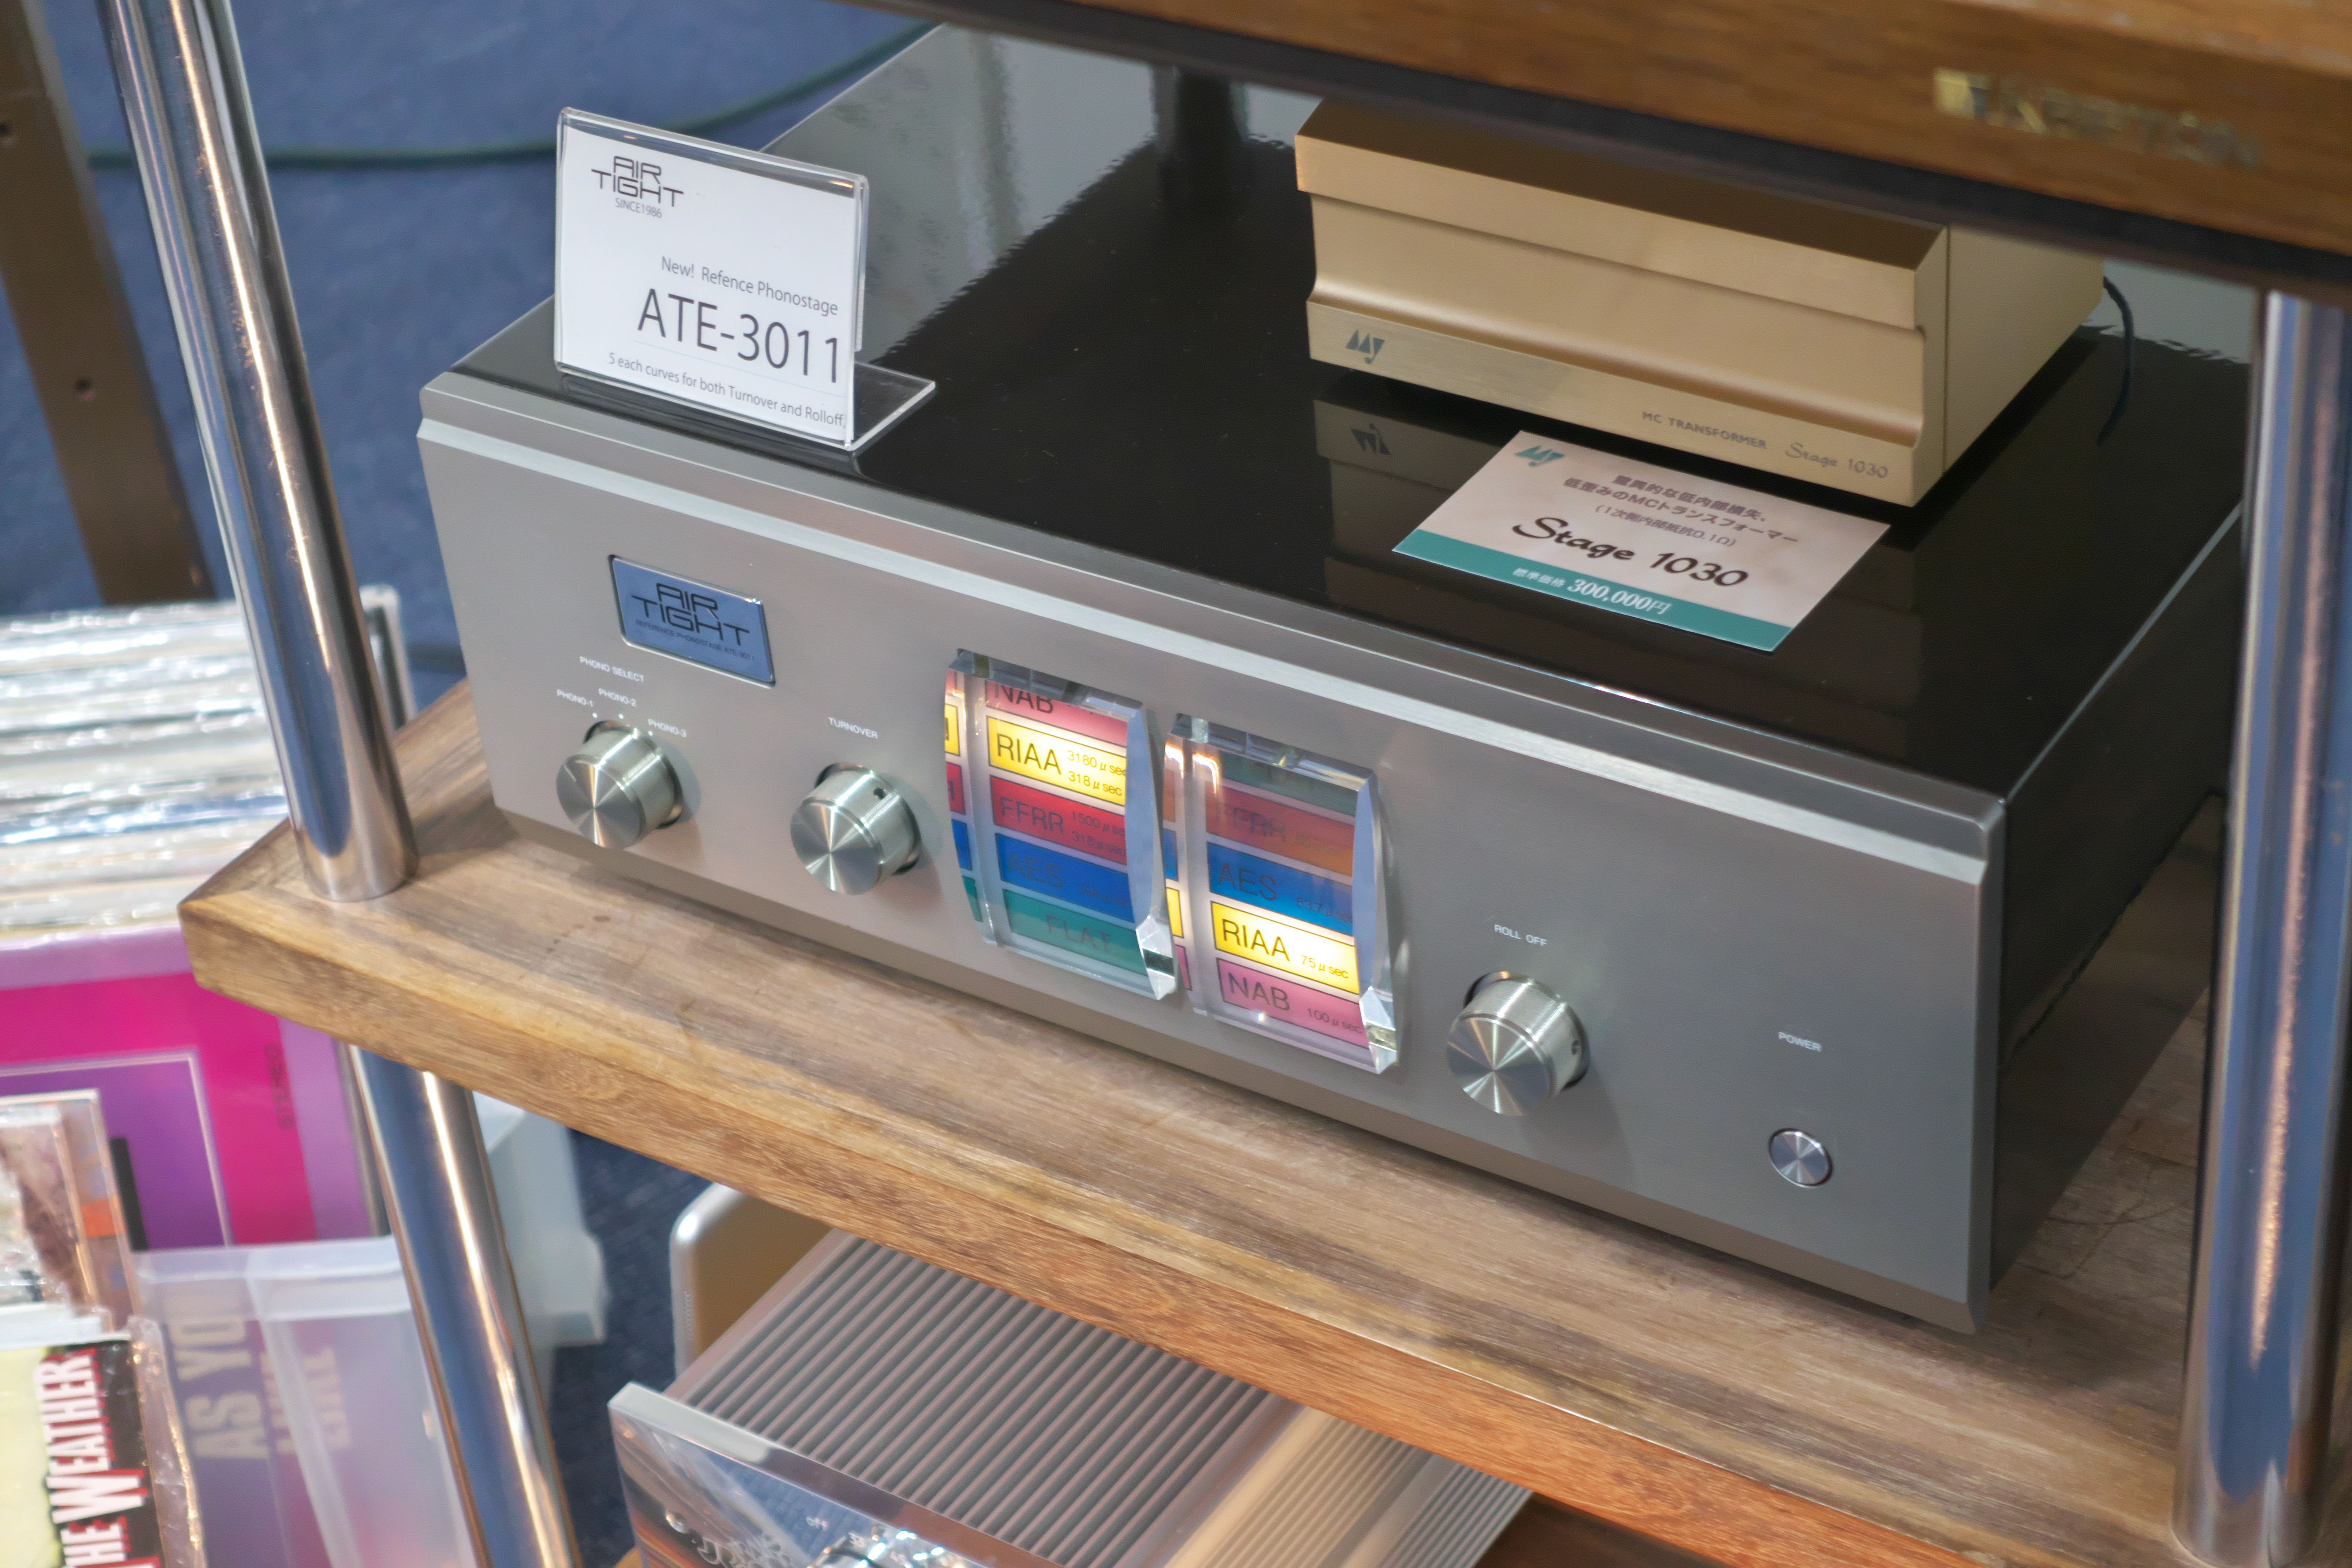 Air Tight Ate 3011 Phono Equalizer Amp Pinterest 22155 W Stereo Power Amplifier Circuit Based On Ba5417